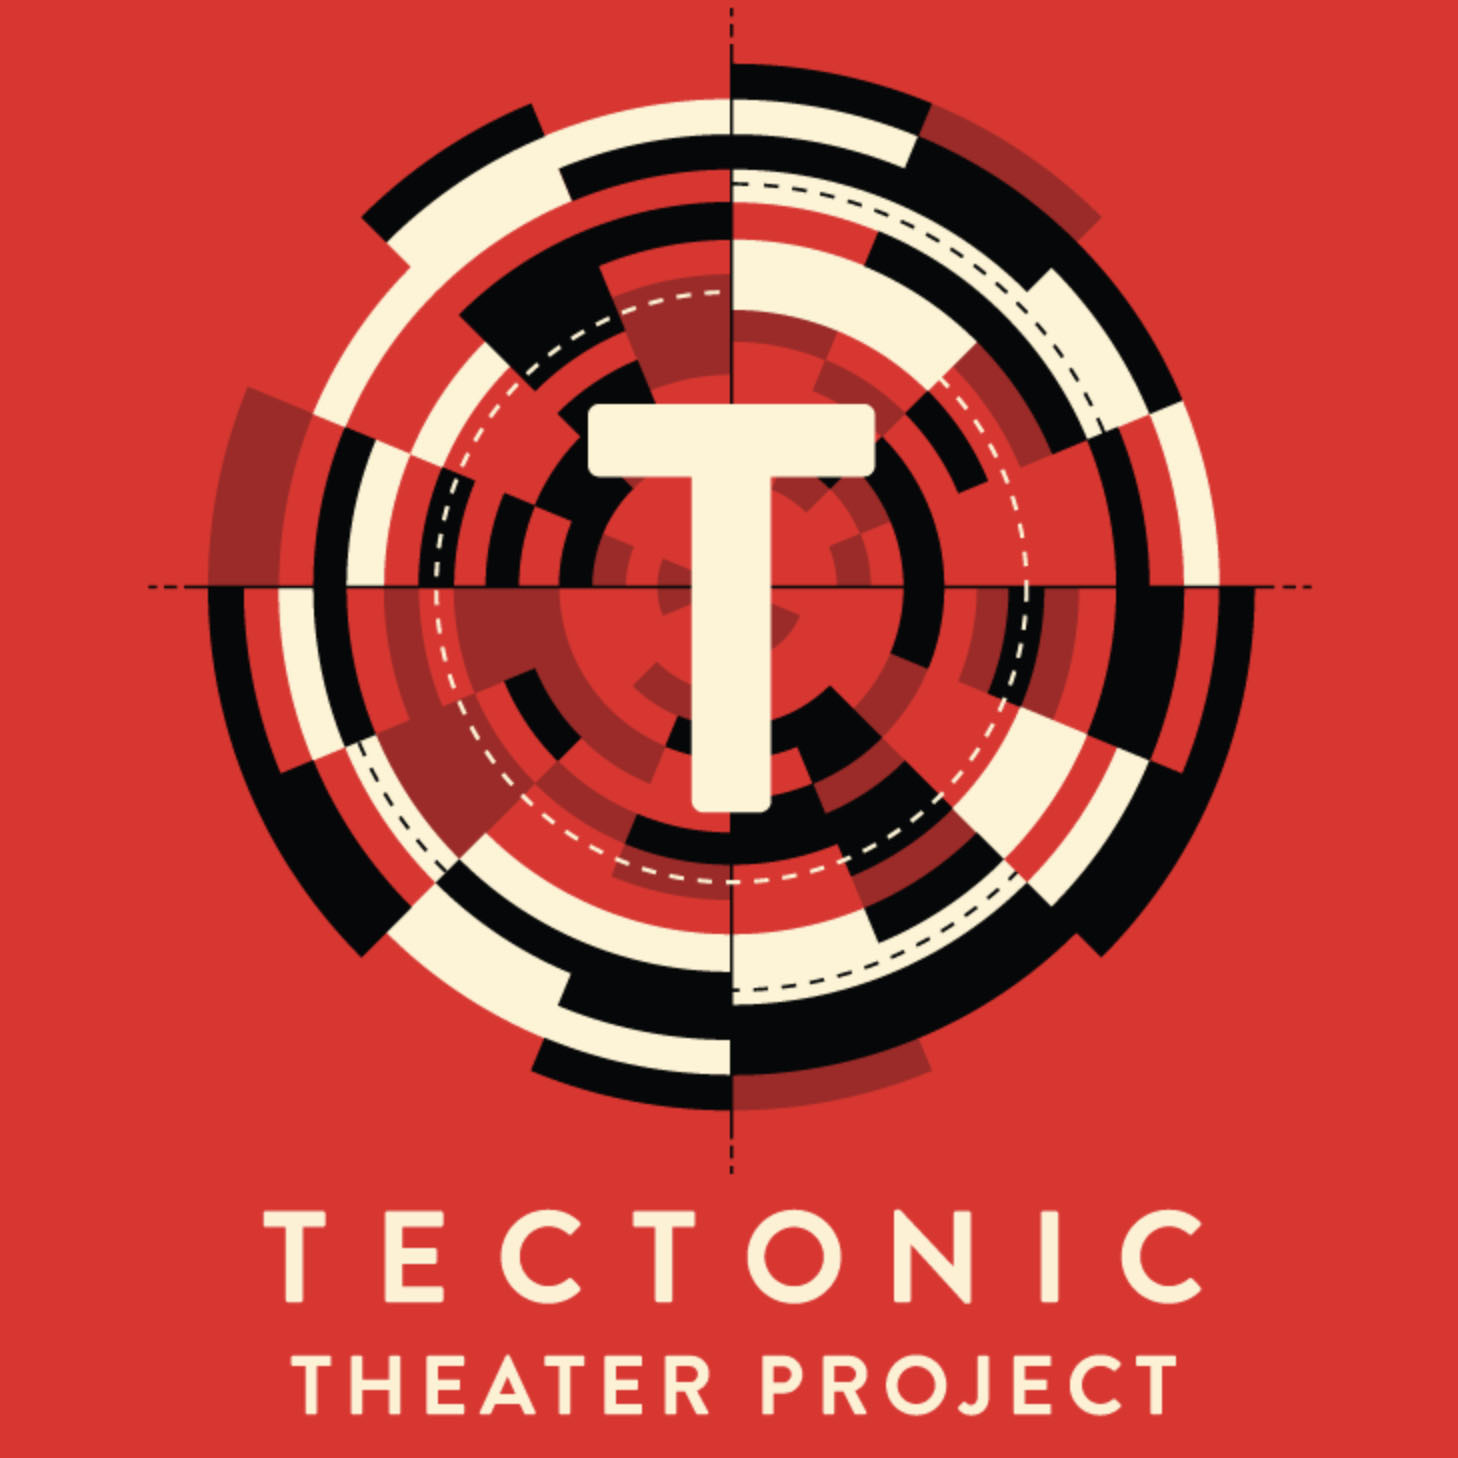 Tectonic Theater Project